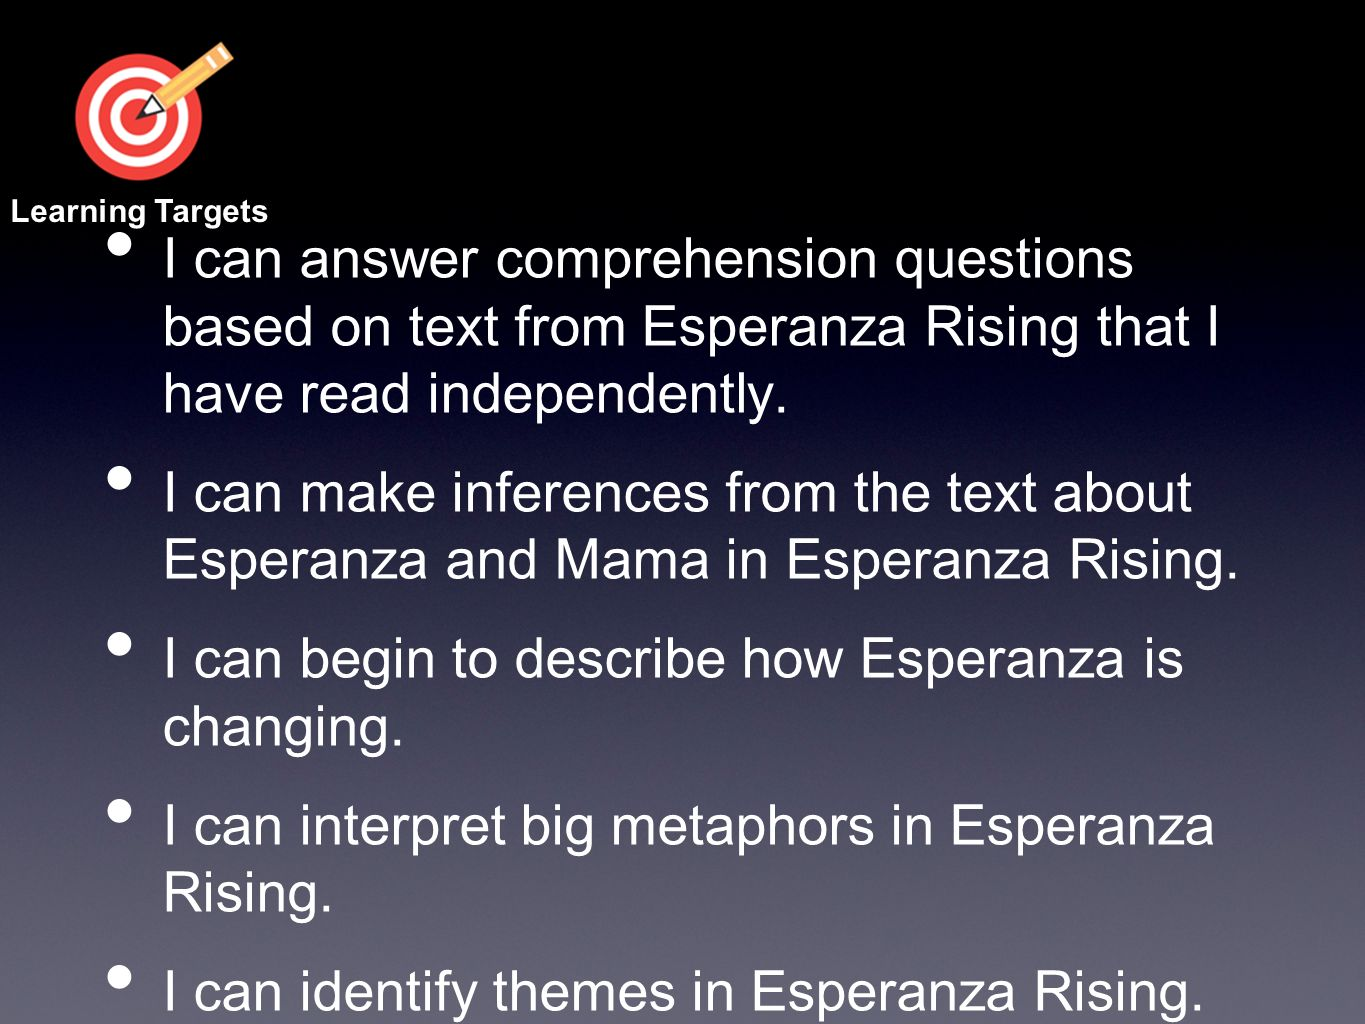 I can answer comprehension questions based on text from Esperanza Rising that I have read independently. I can make inferences from the text about Esp